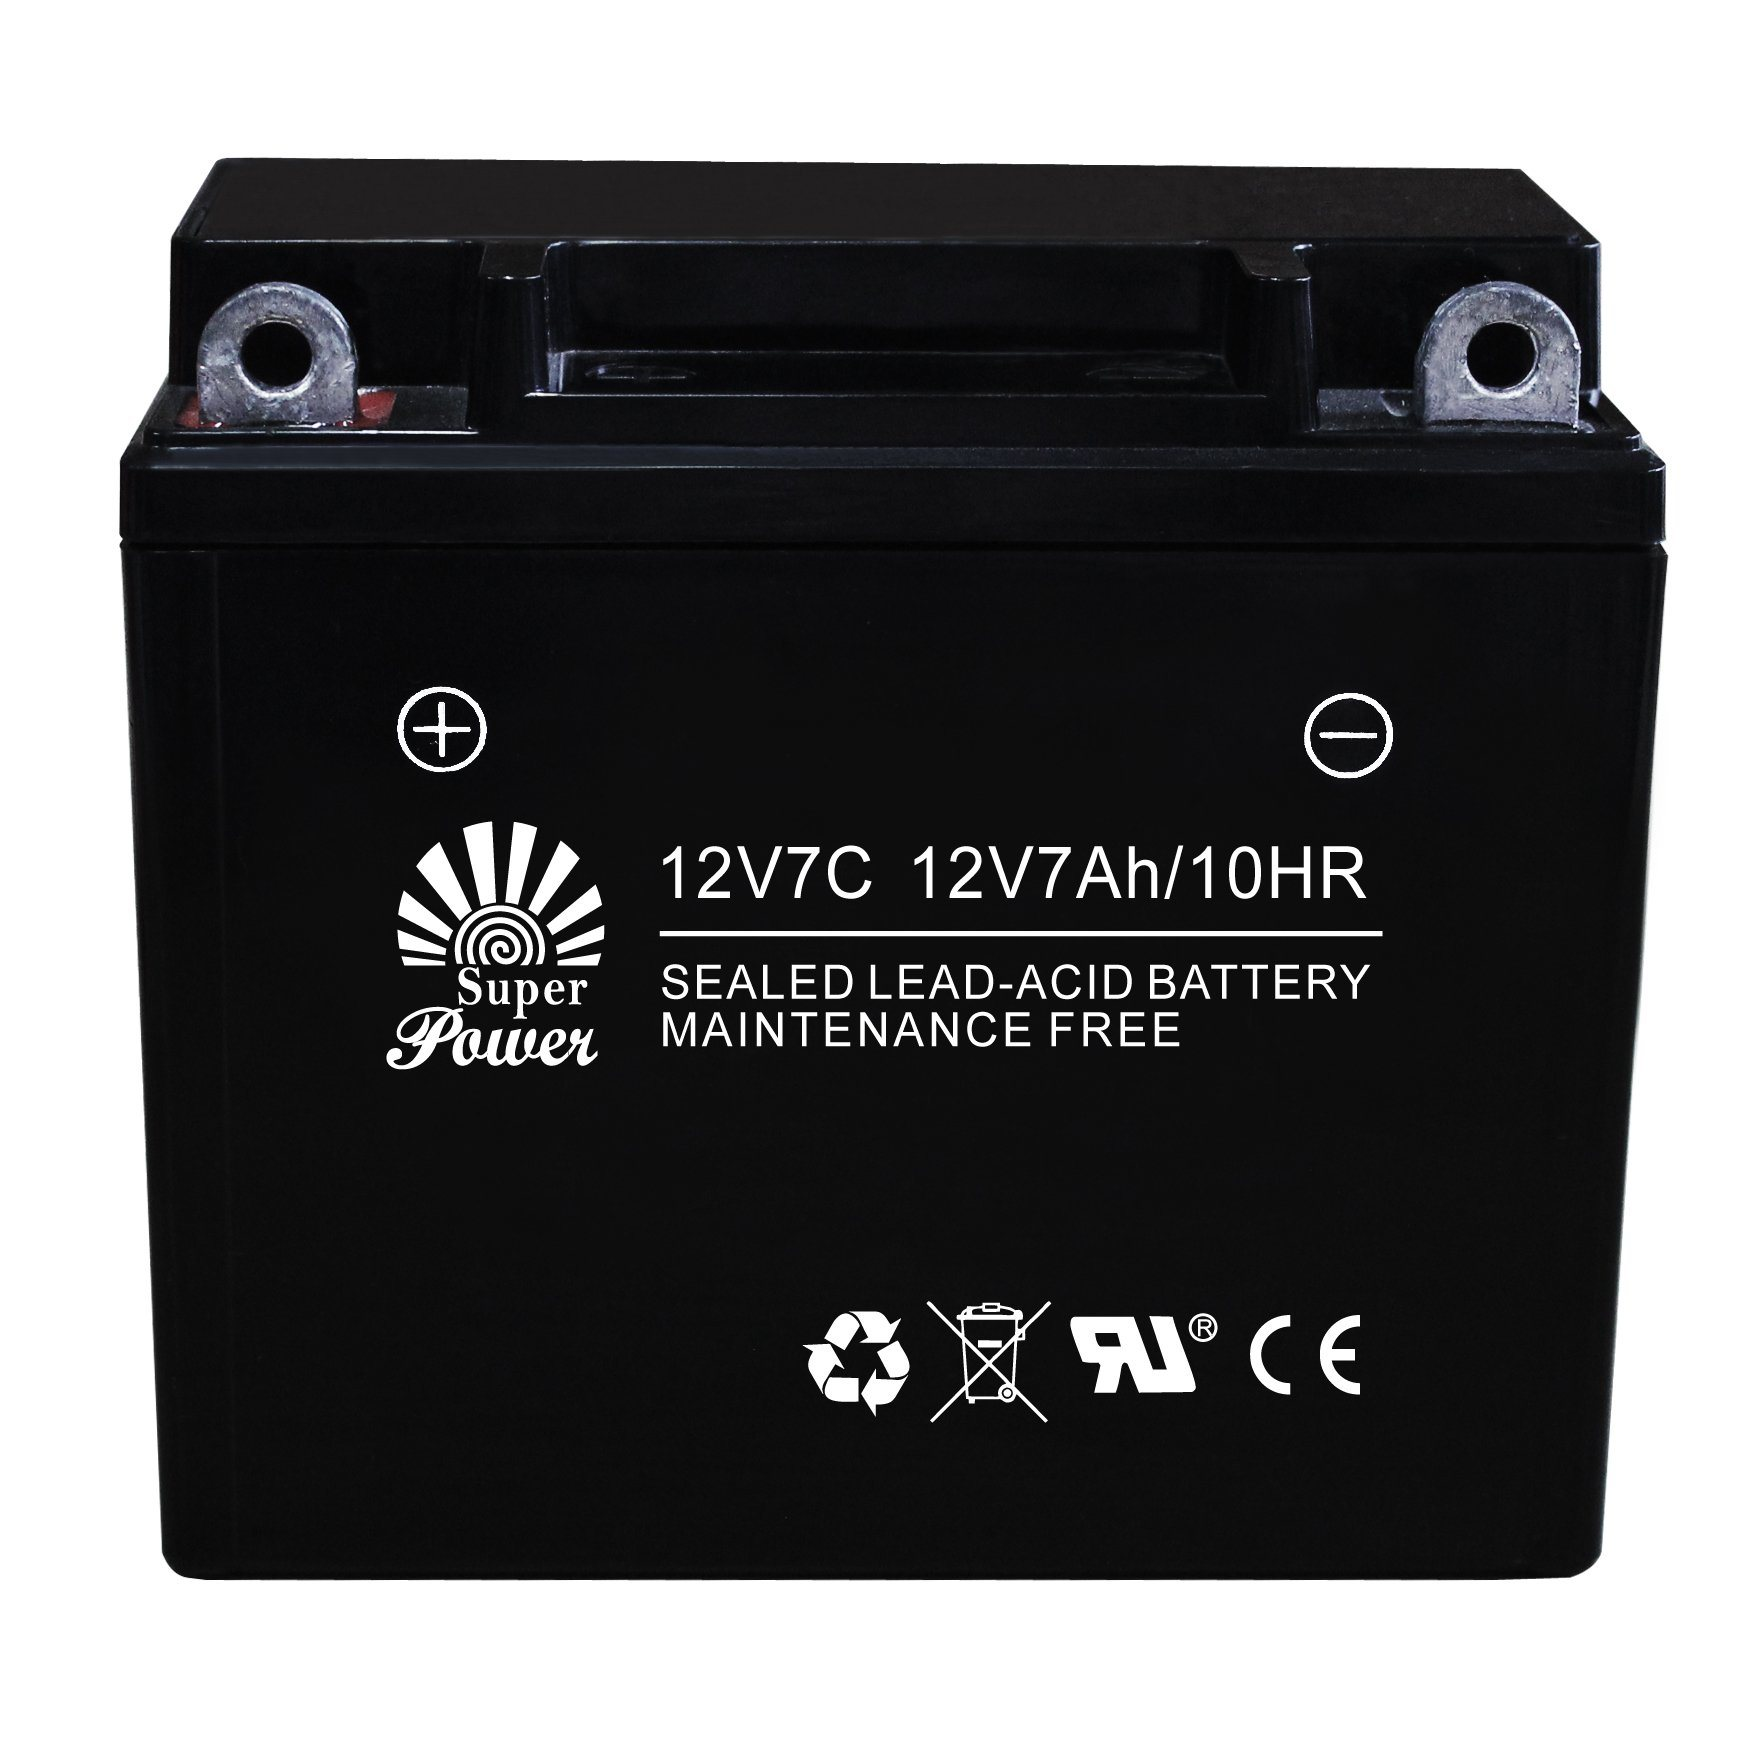 VRLA Motorcycle Battery 12V 7ah with CE UL Certificate Called 12V7C